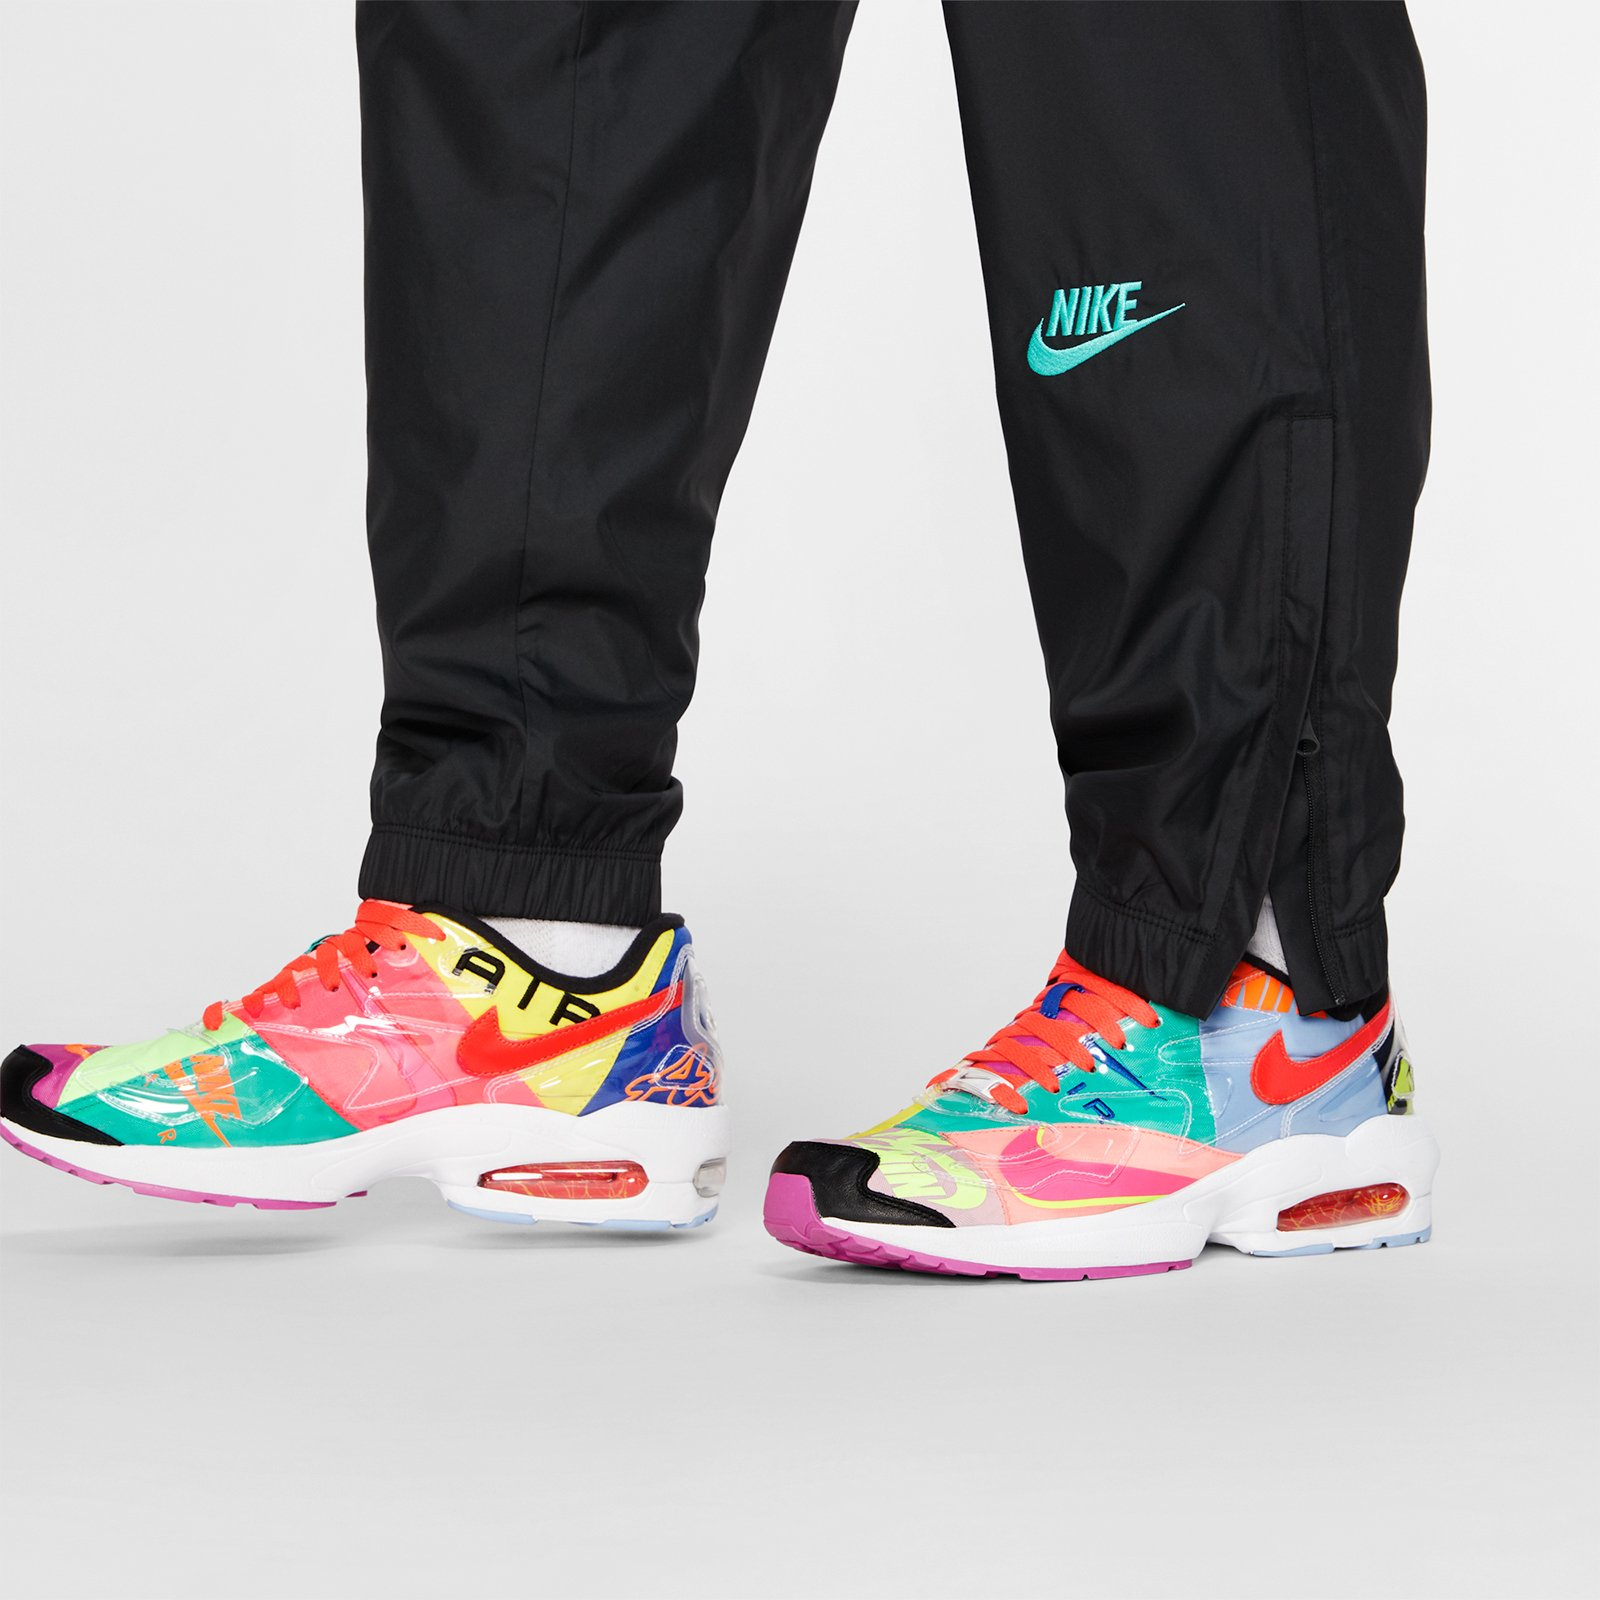 sports shoes a4fcf 0eb81 Nike Sportswear Atmos Vintage Patchwork Track Pant - 4. Close